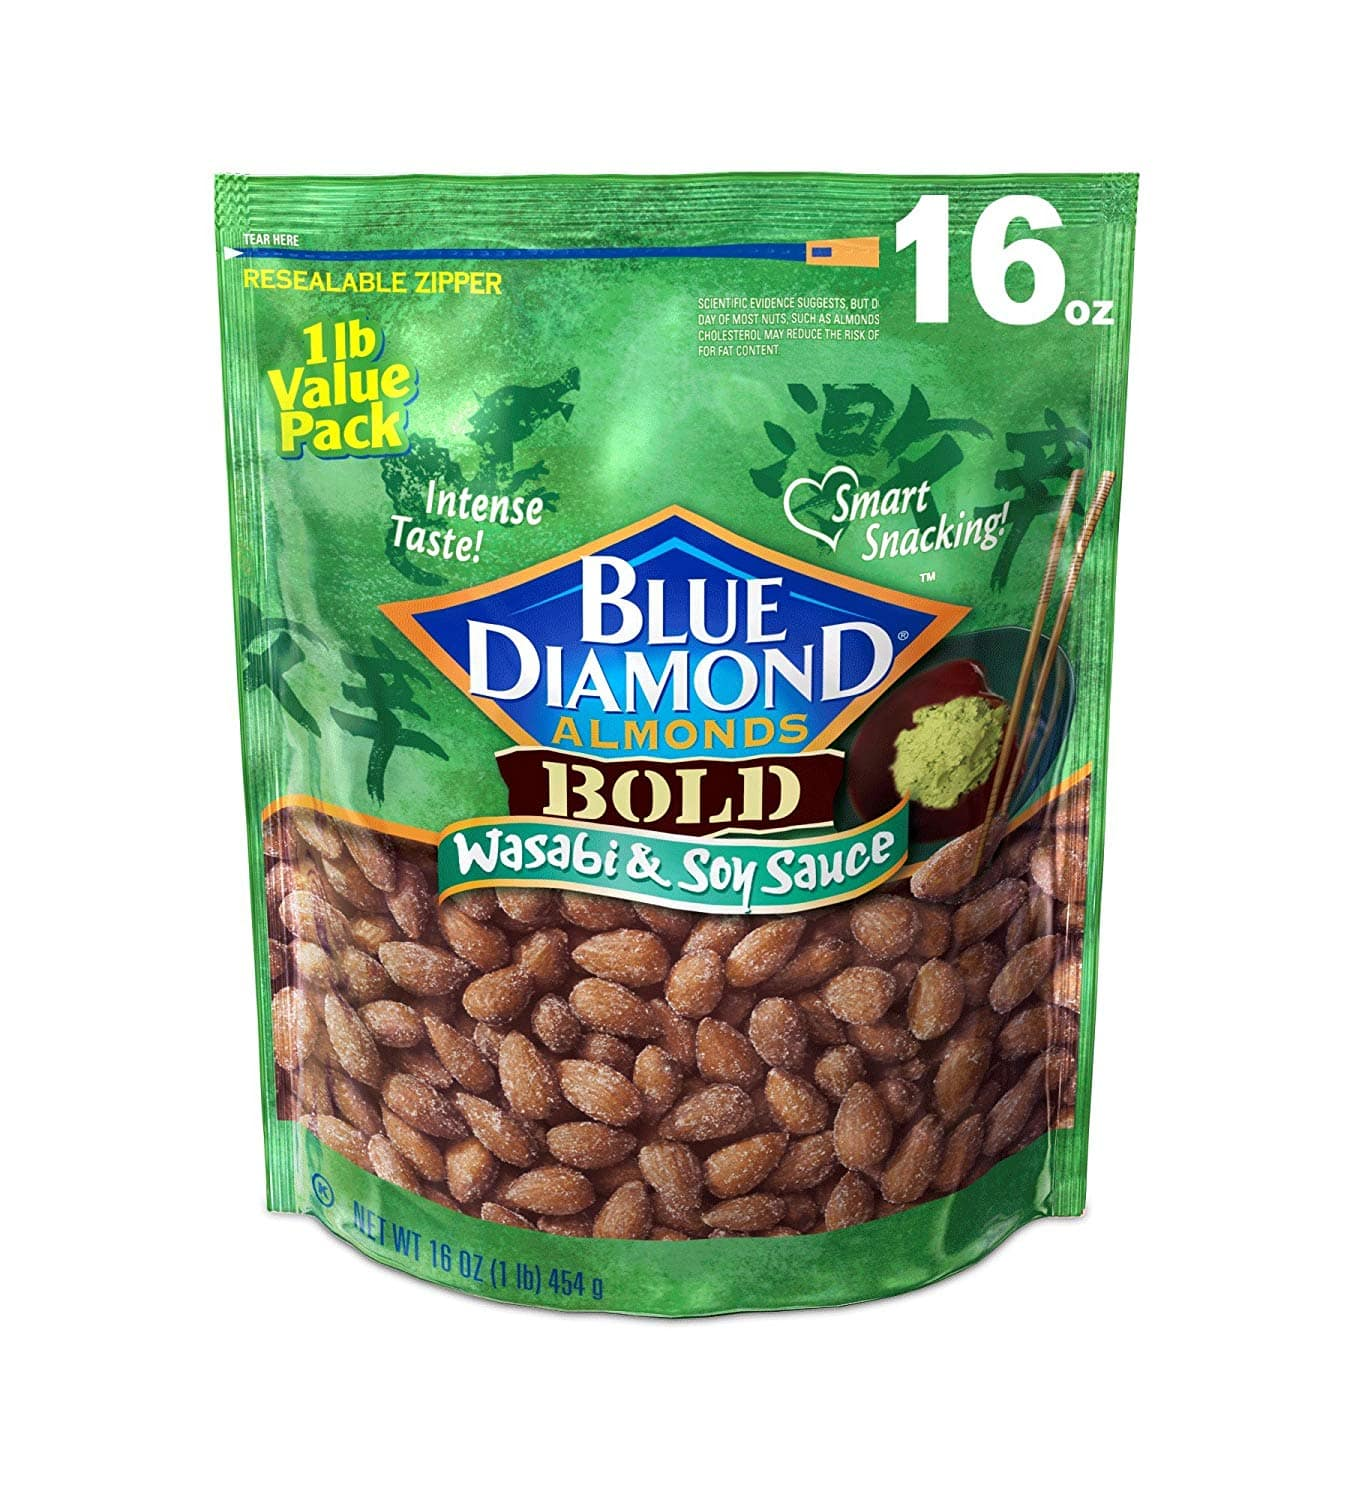 Blue Diamond Almonds Bold Wasabi & Soy Sauce Almonds $5.69 (16 Ounce) w/ S&S